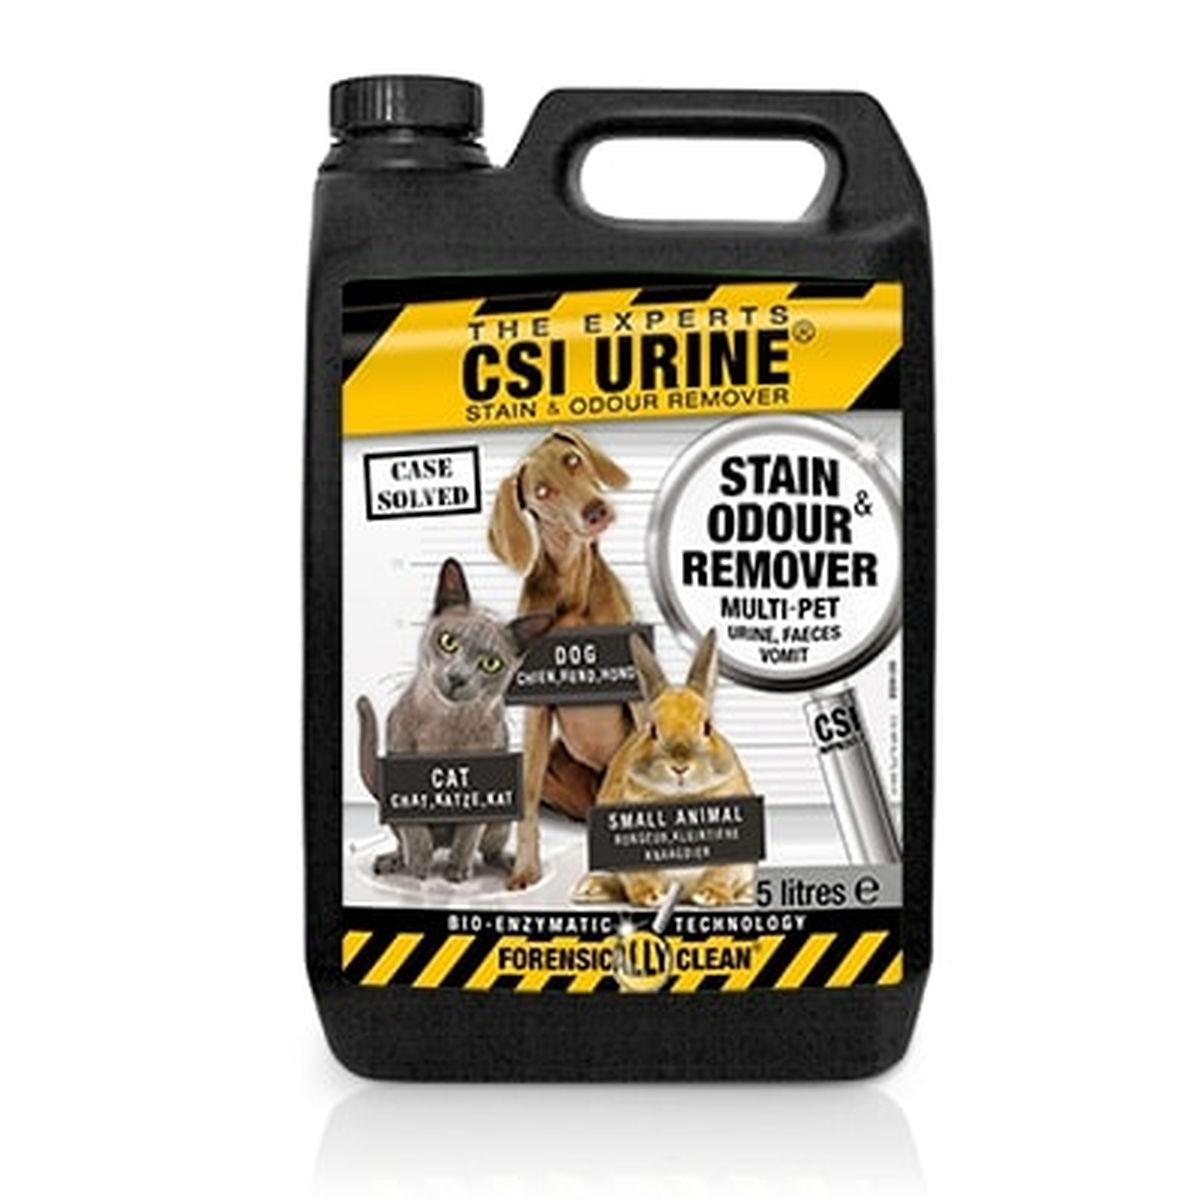 CSI URINE MULTI PET 5LTR N 00001